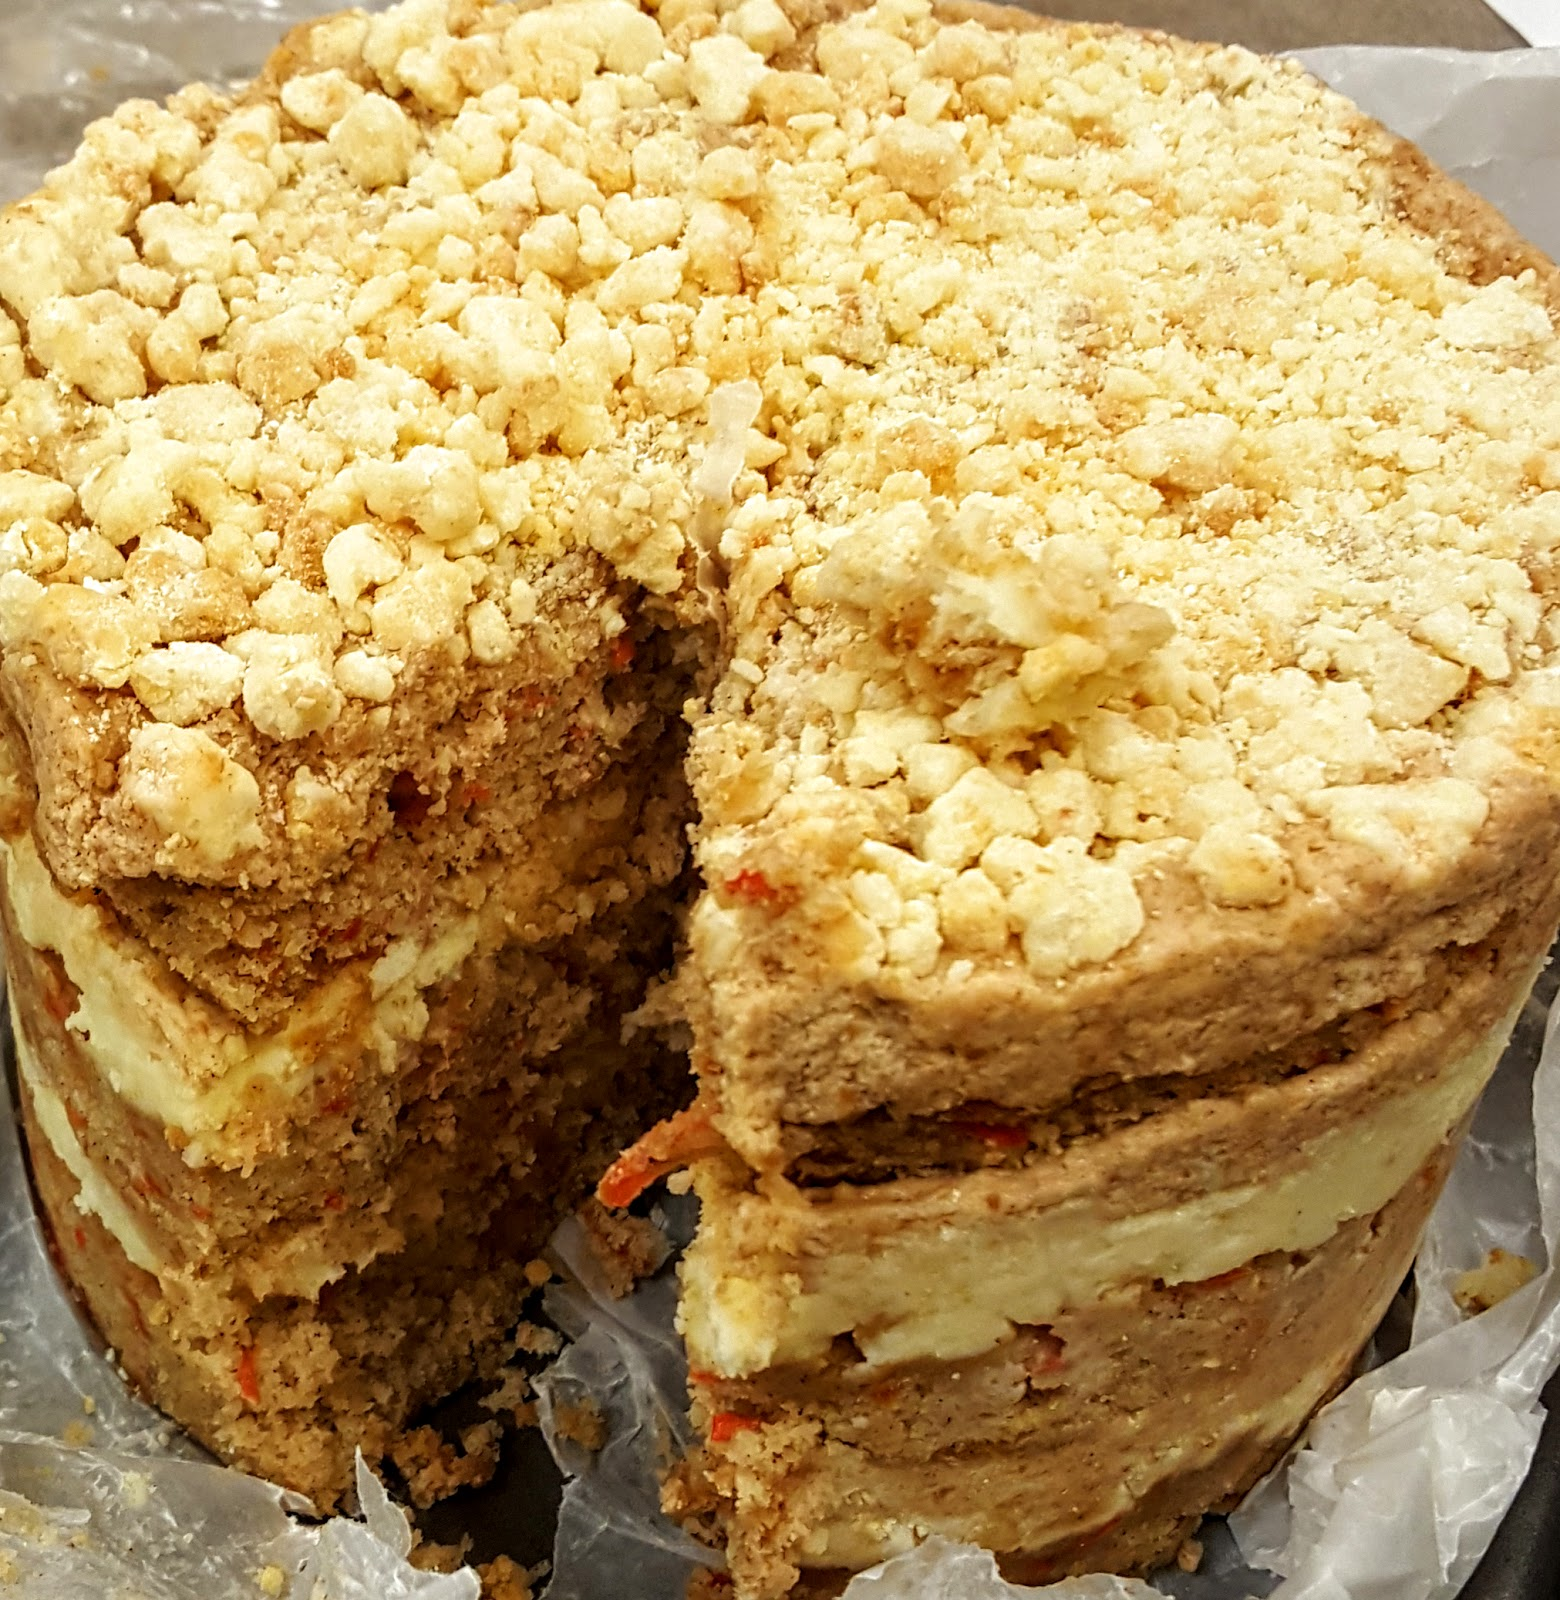 Again With The Momou Milk Bar Layer Cakes Yes One Of My New Coworkers Requested Carrot Cake For Her Birthday I Didn T Want To Give Her Just Any